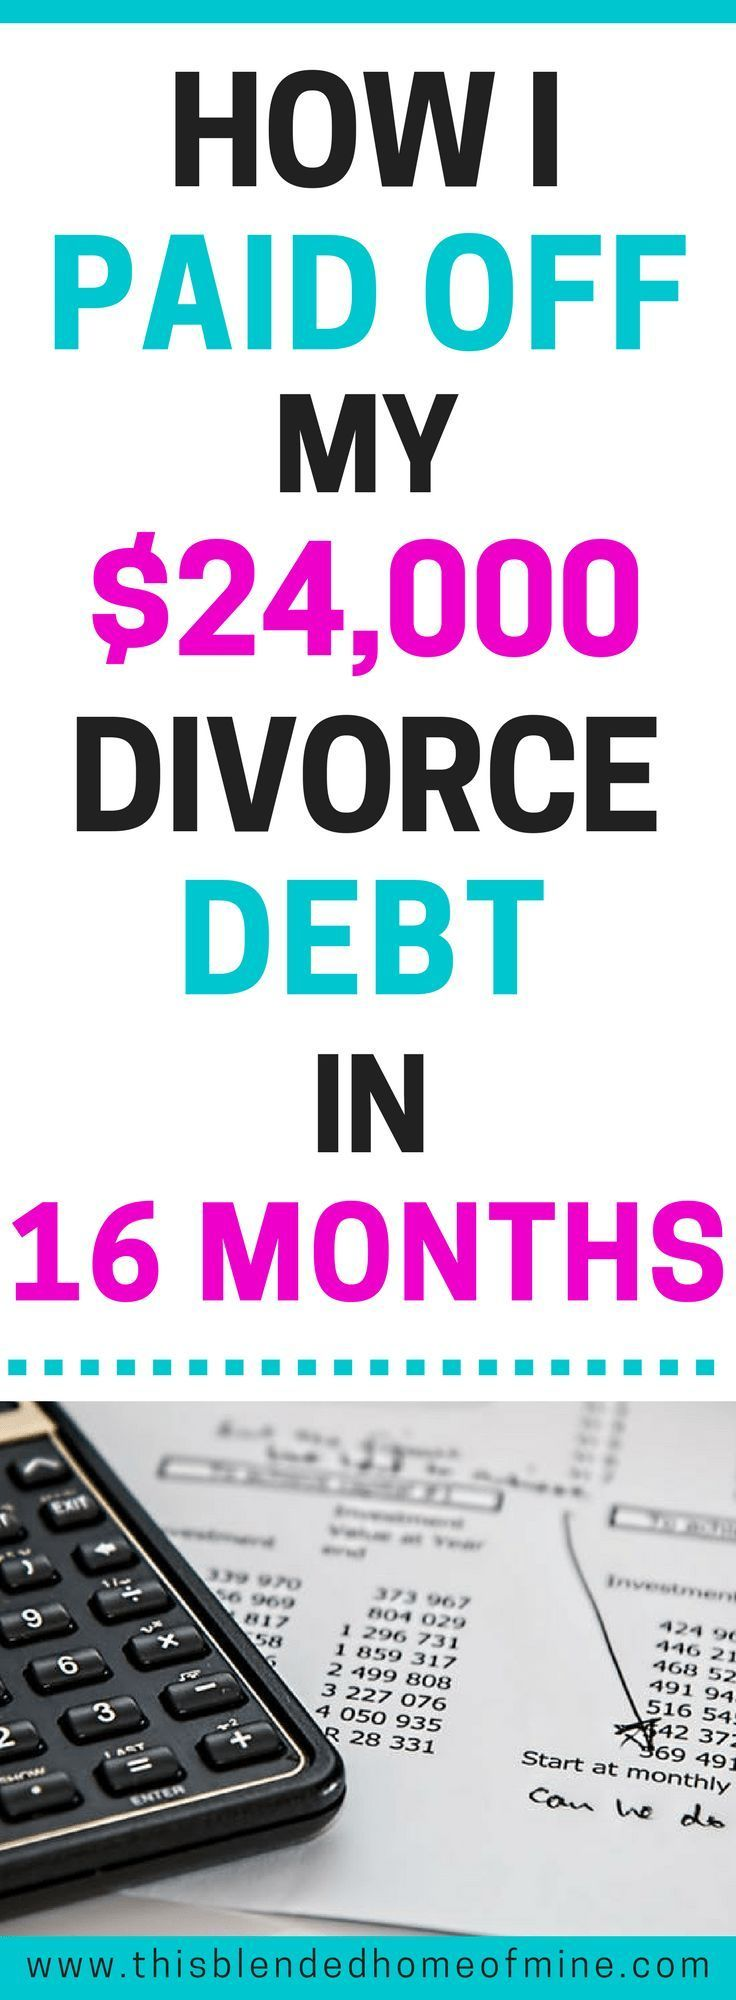 HOW I PAID MY $24,000 DIVORCE DEBT IN 16 MONTHS - This Blended Home of Mine - Get out of Debt | How to pay off debt